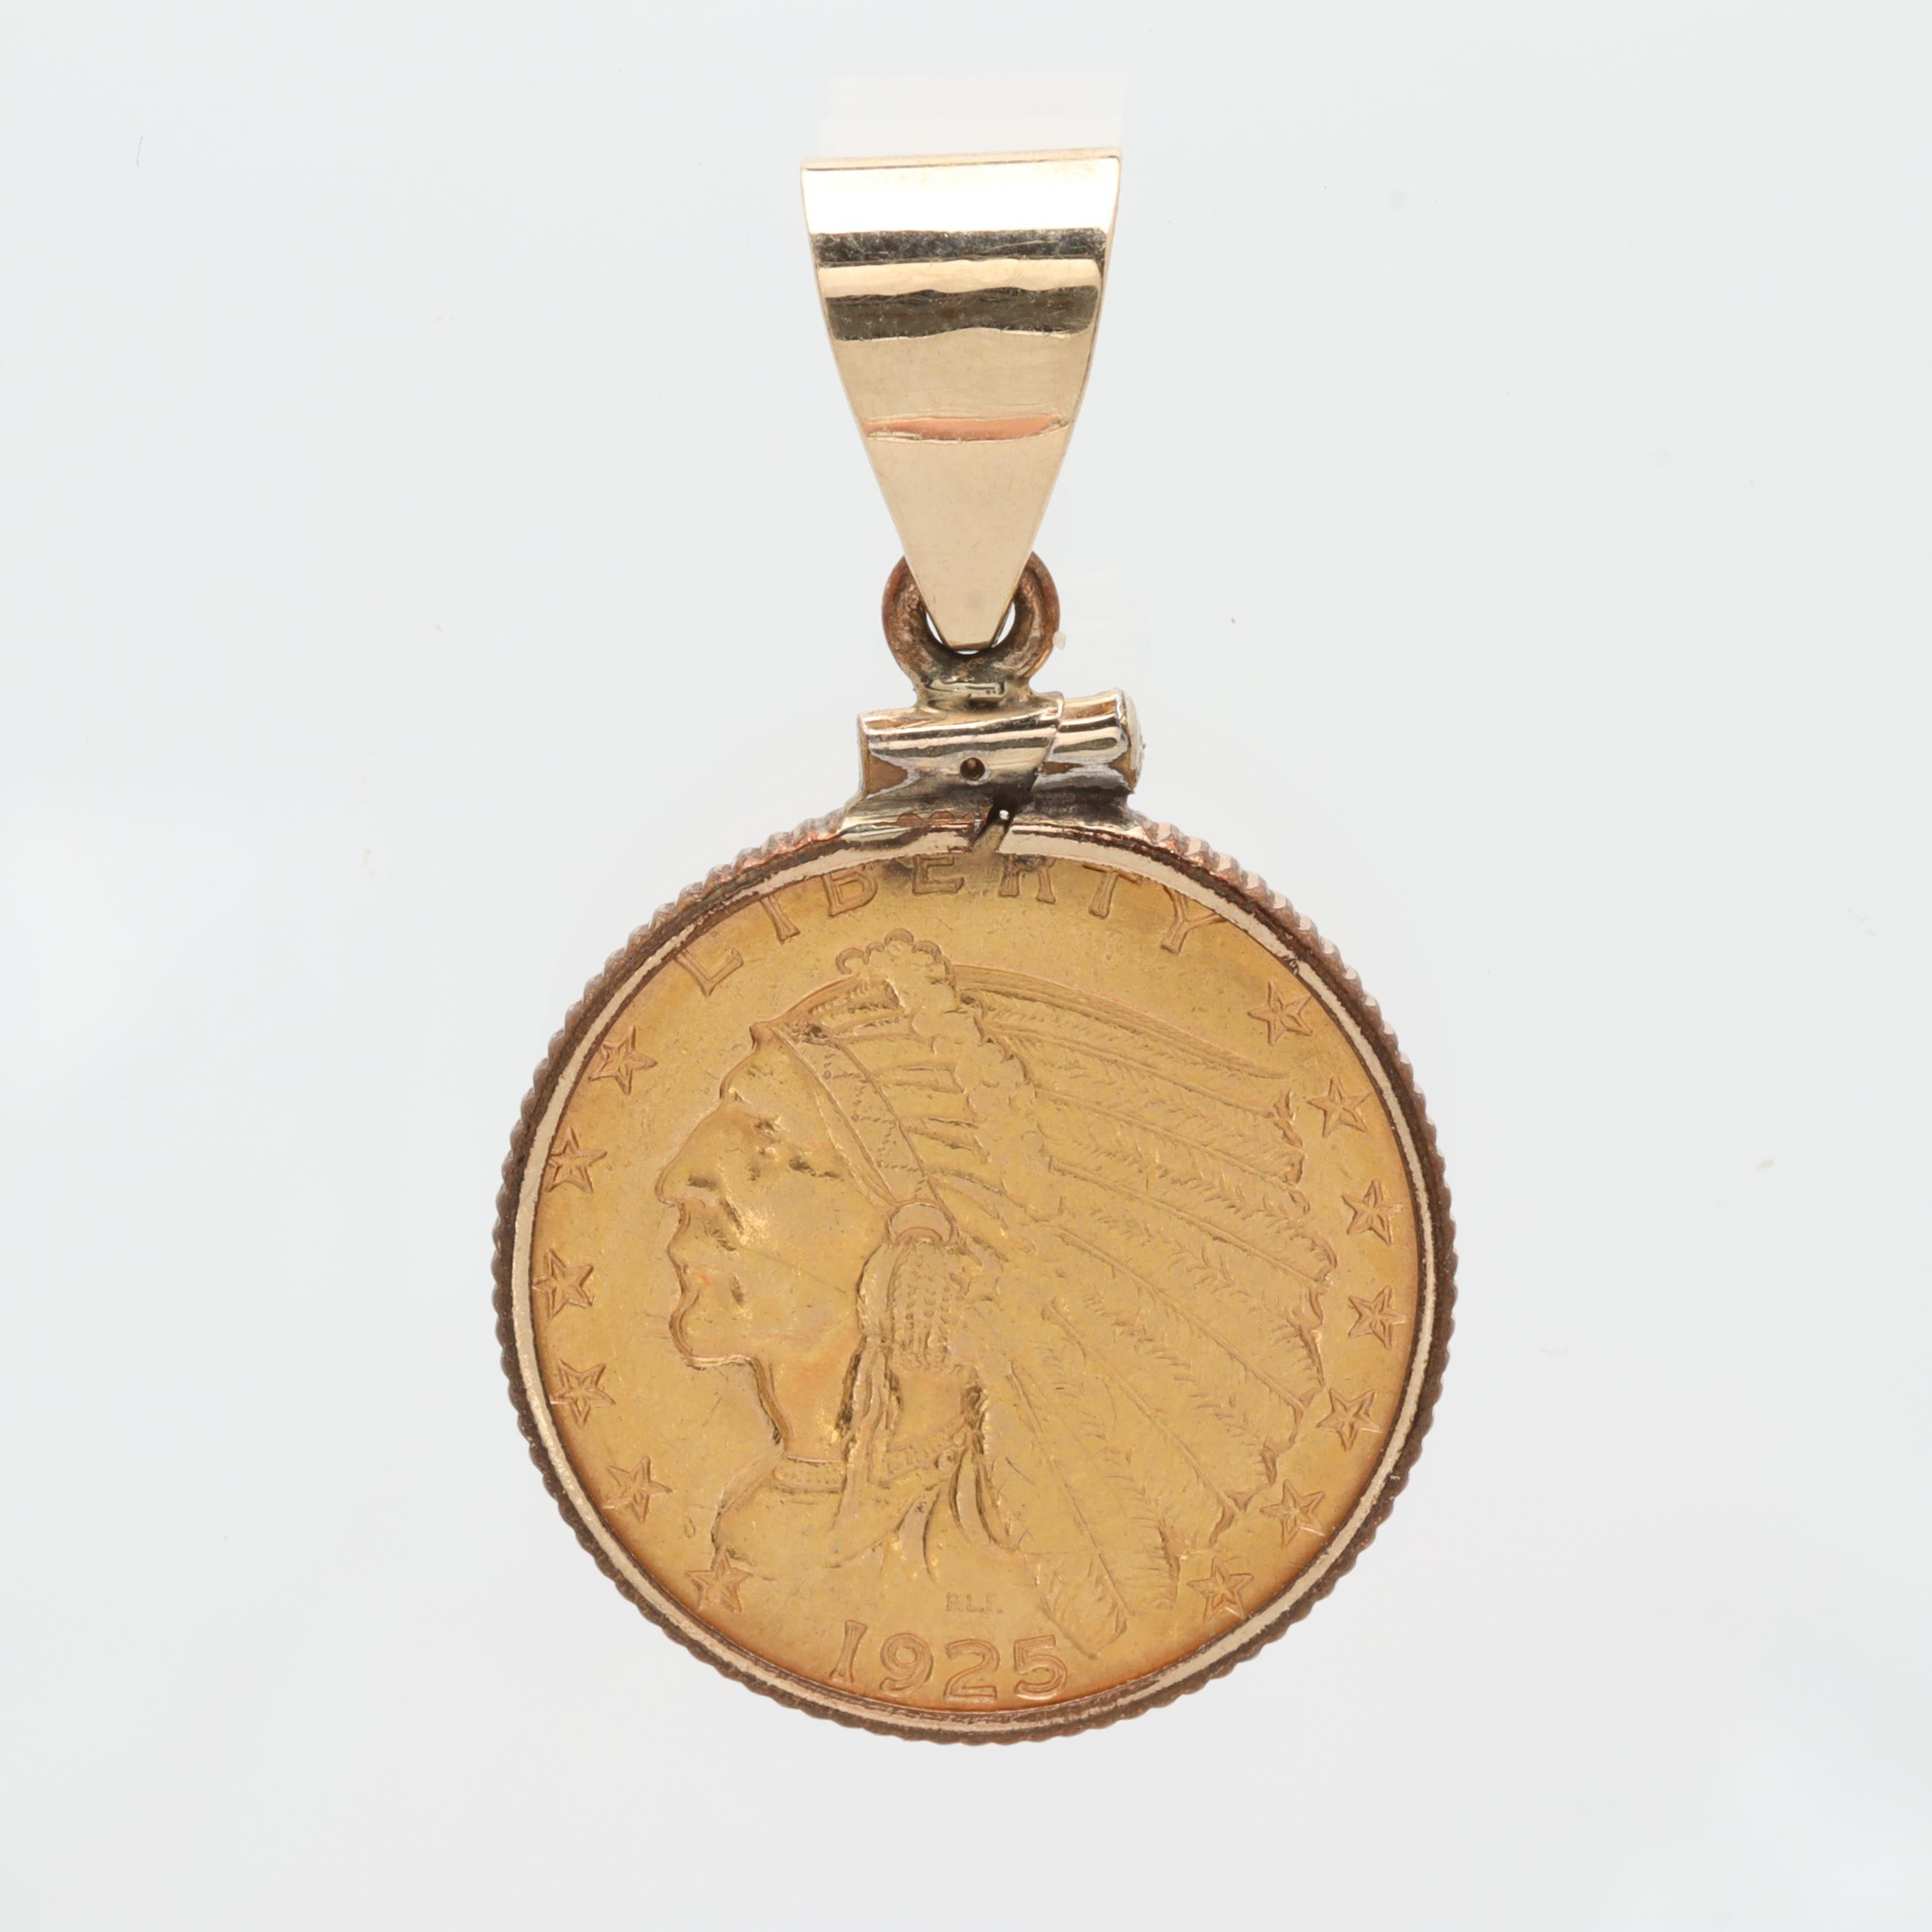 14K Yellow Gold Pendant with 1925-D Indian Head $2.50 Gold Coin